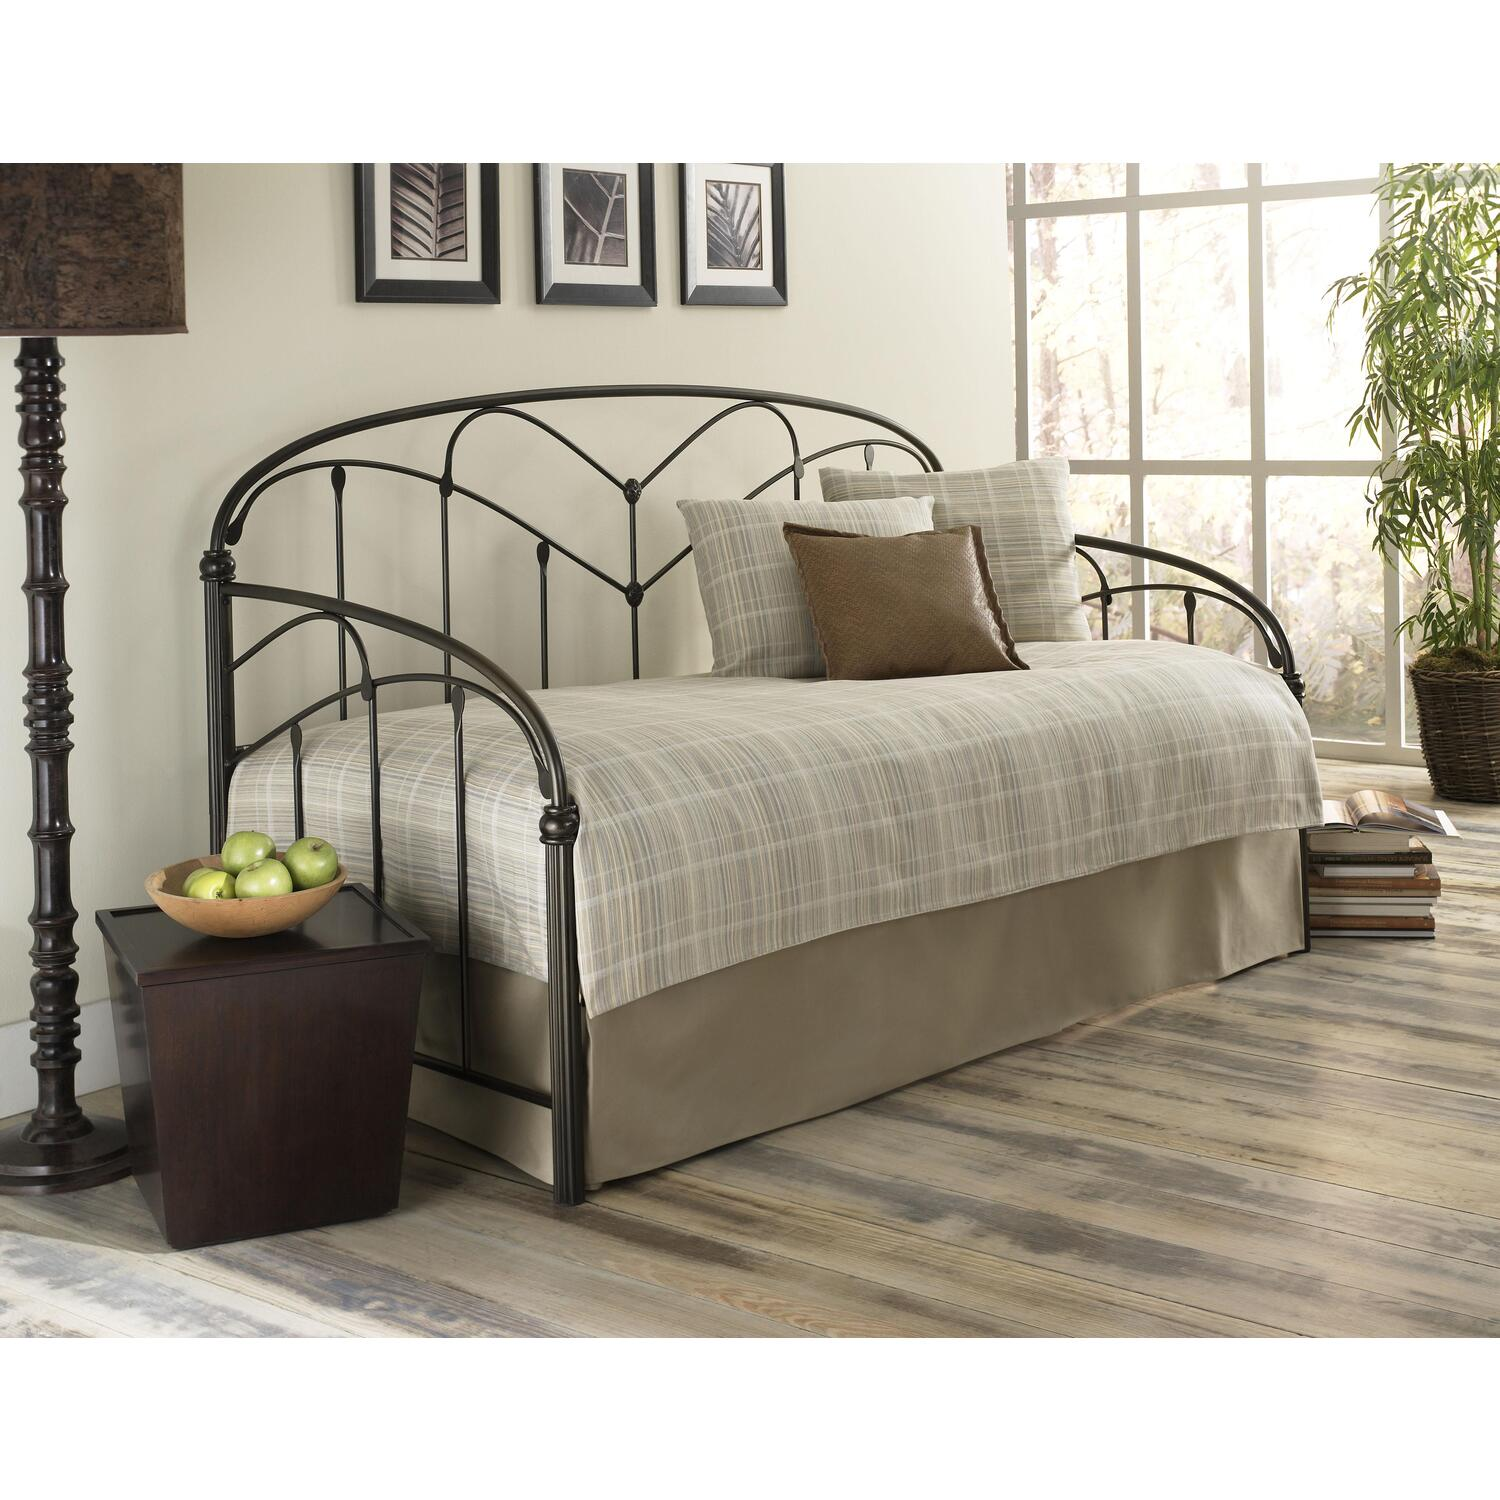 Pomona hazelnut daybed ojcommerce for Oriental furniture montreal